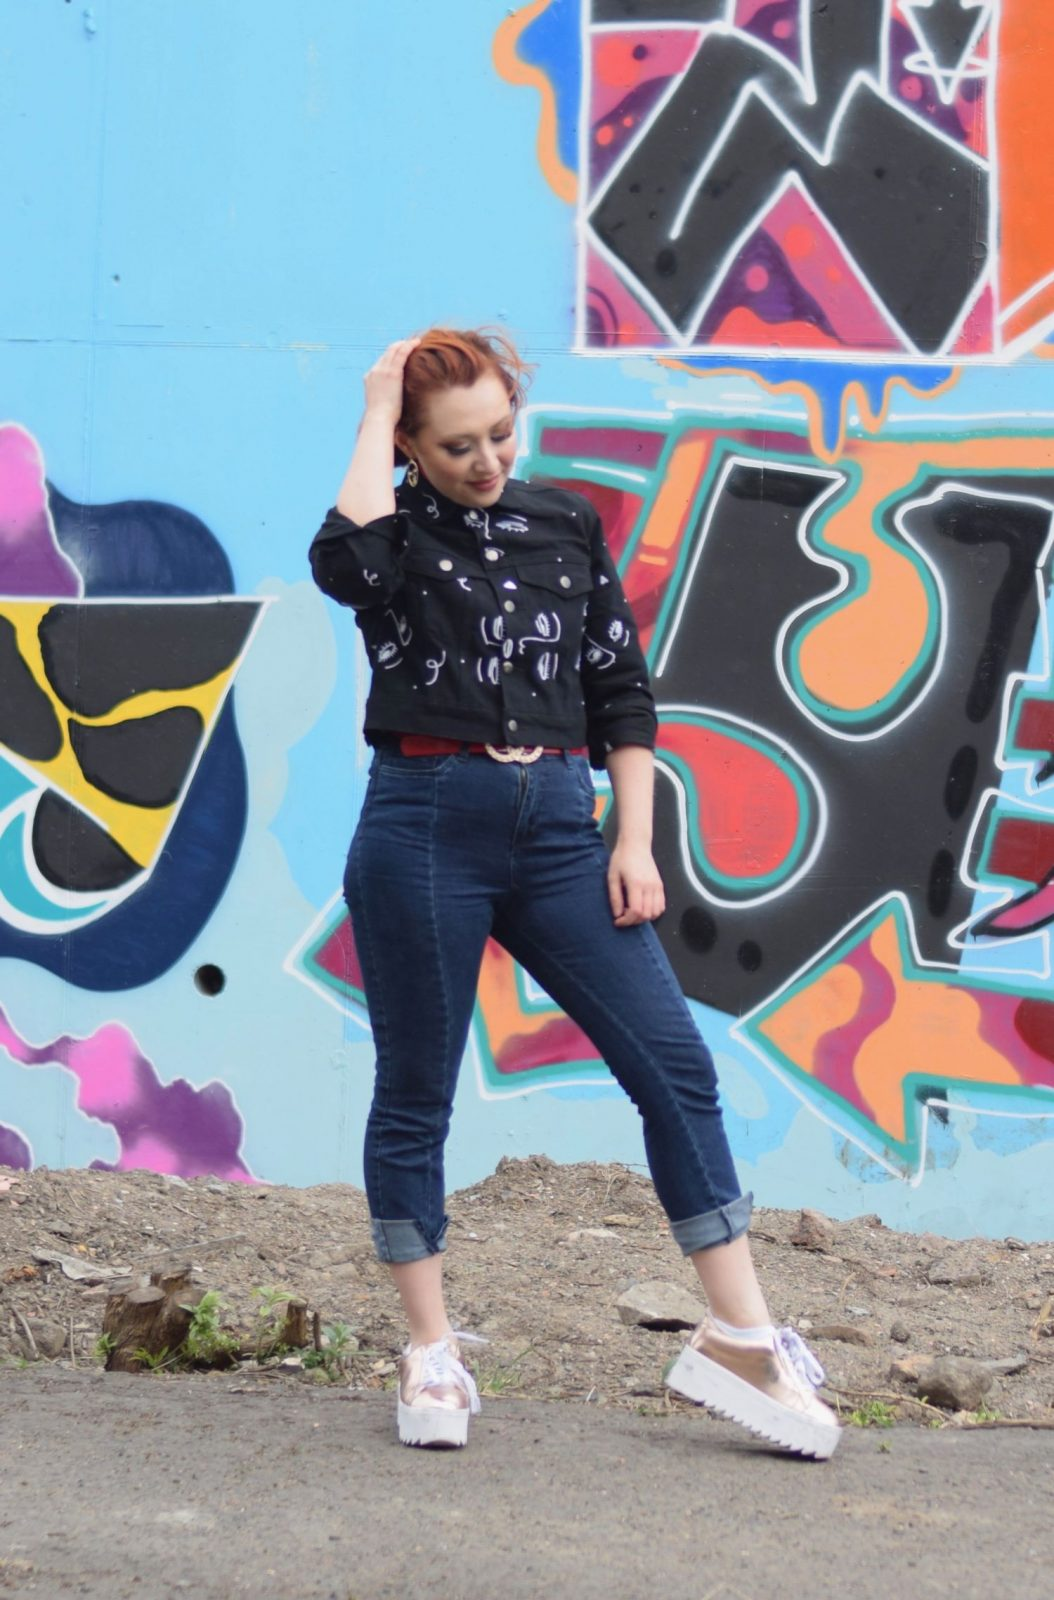 Blogger Twenty-Something City wears jeans, platform trainers and printed denim jacket